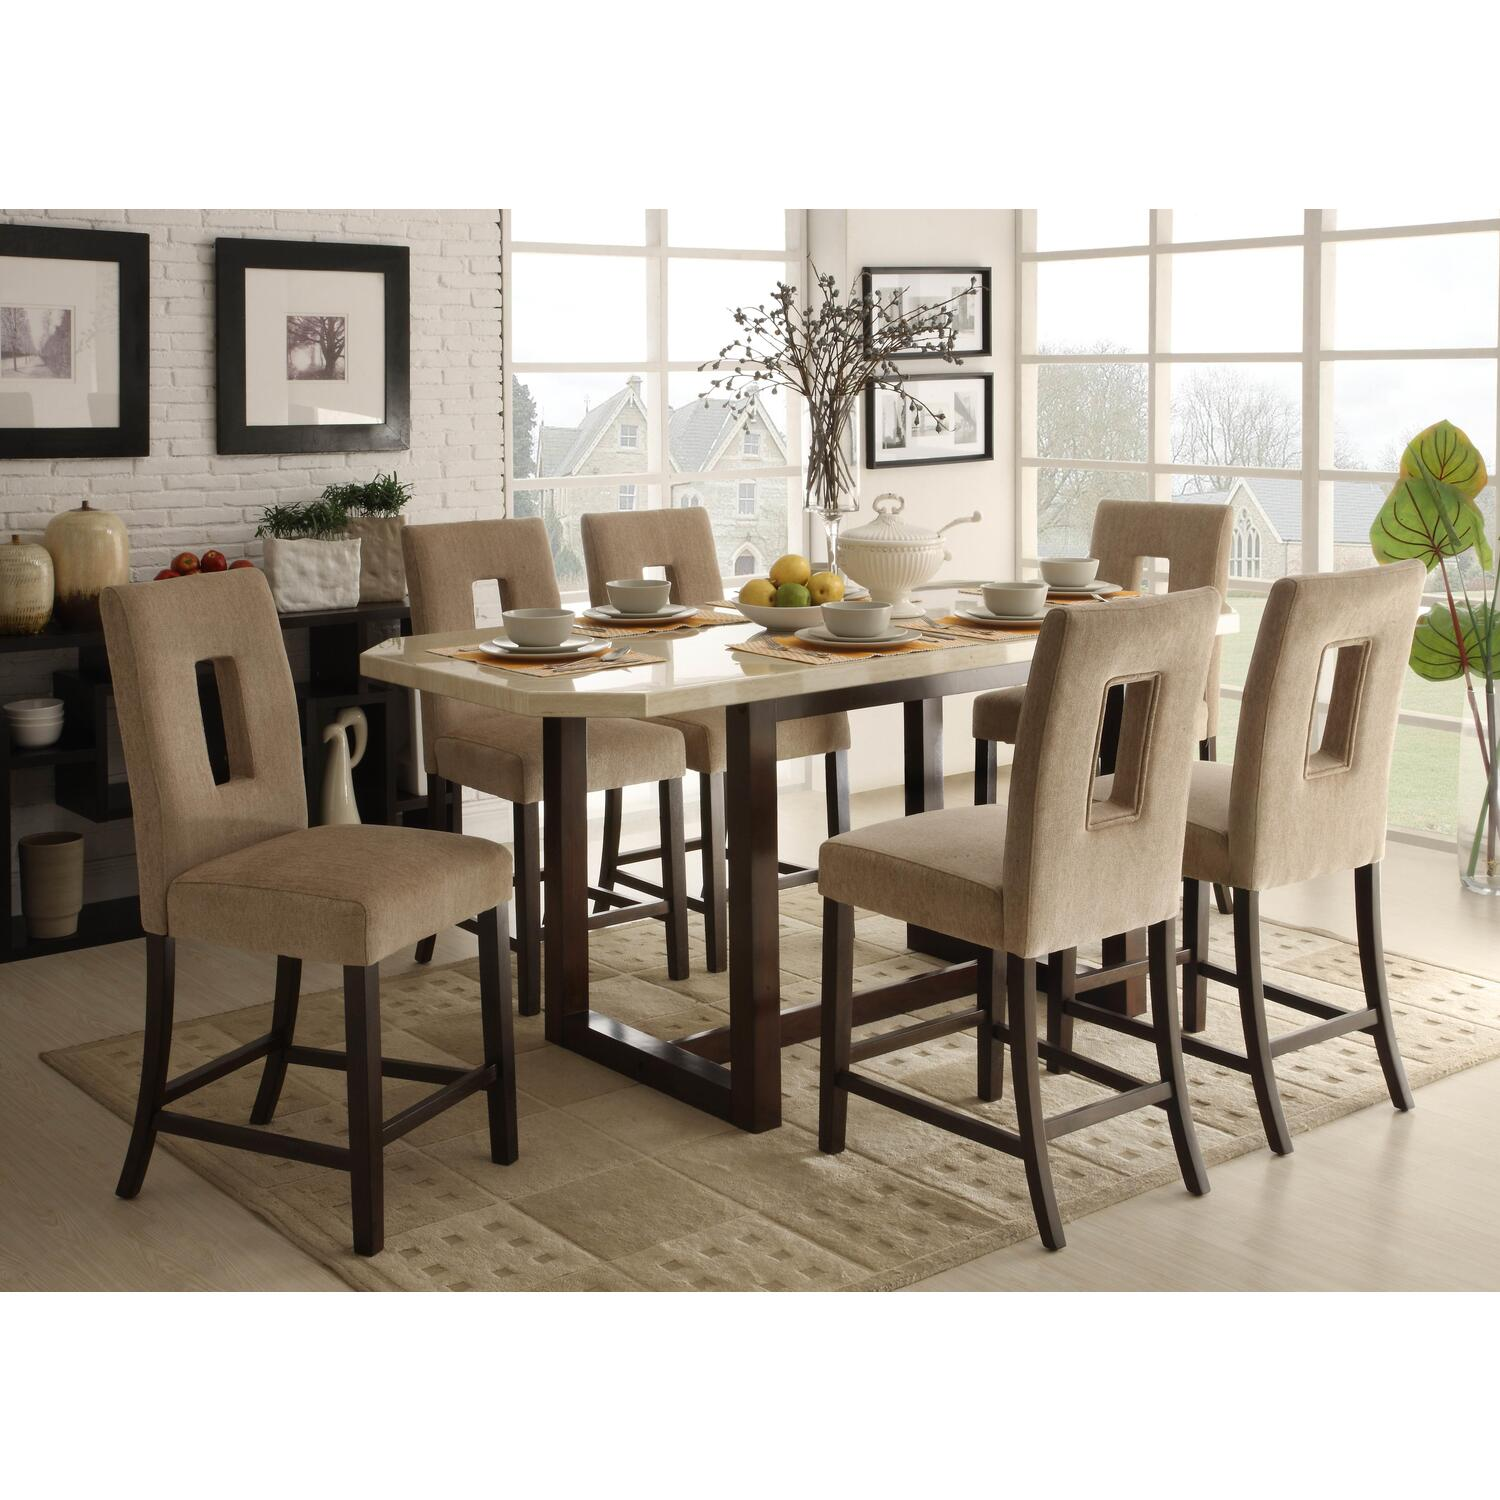 Homelegance Reiss Counter Height Table Set by OJ merce $1 072 14 $1 344 09